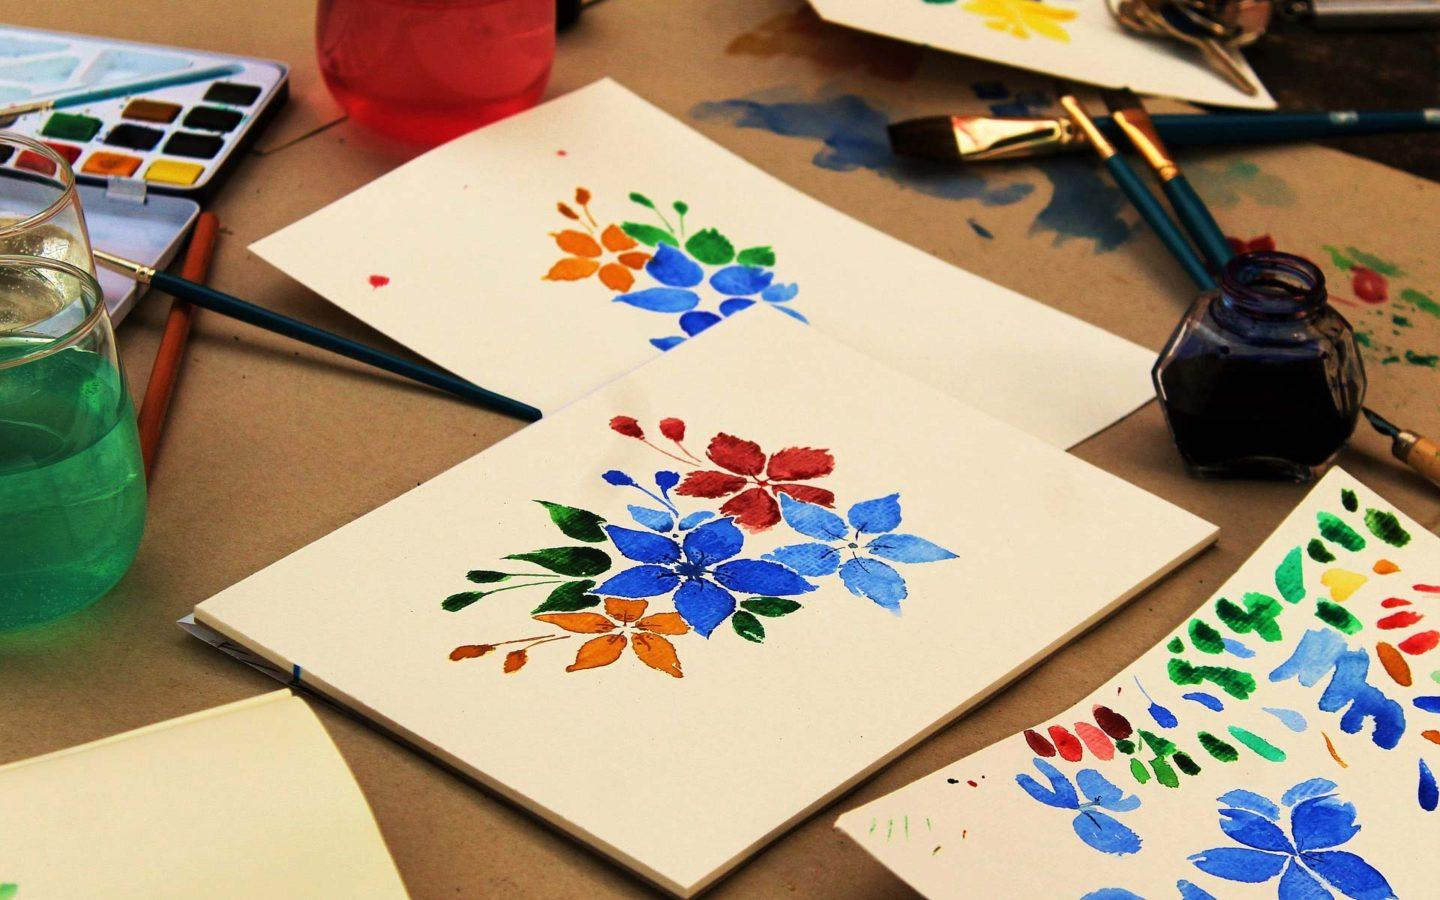 a watercolour painting of flowers on a white canvas